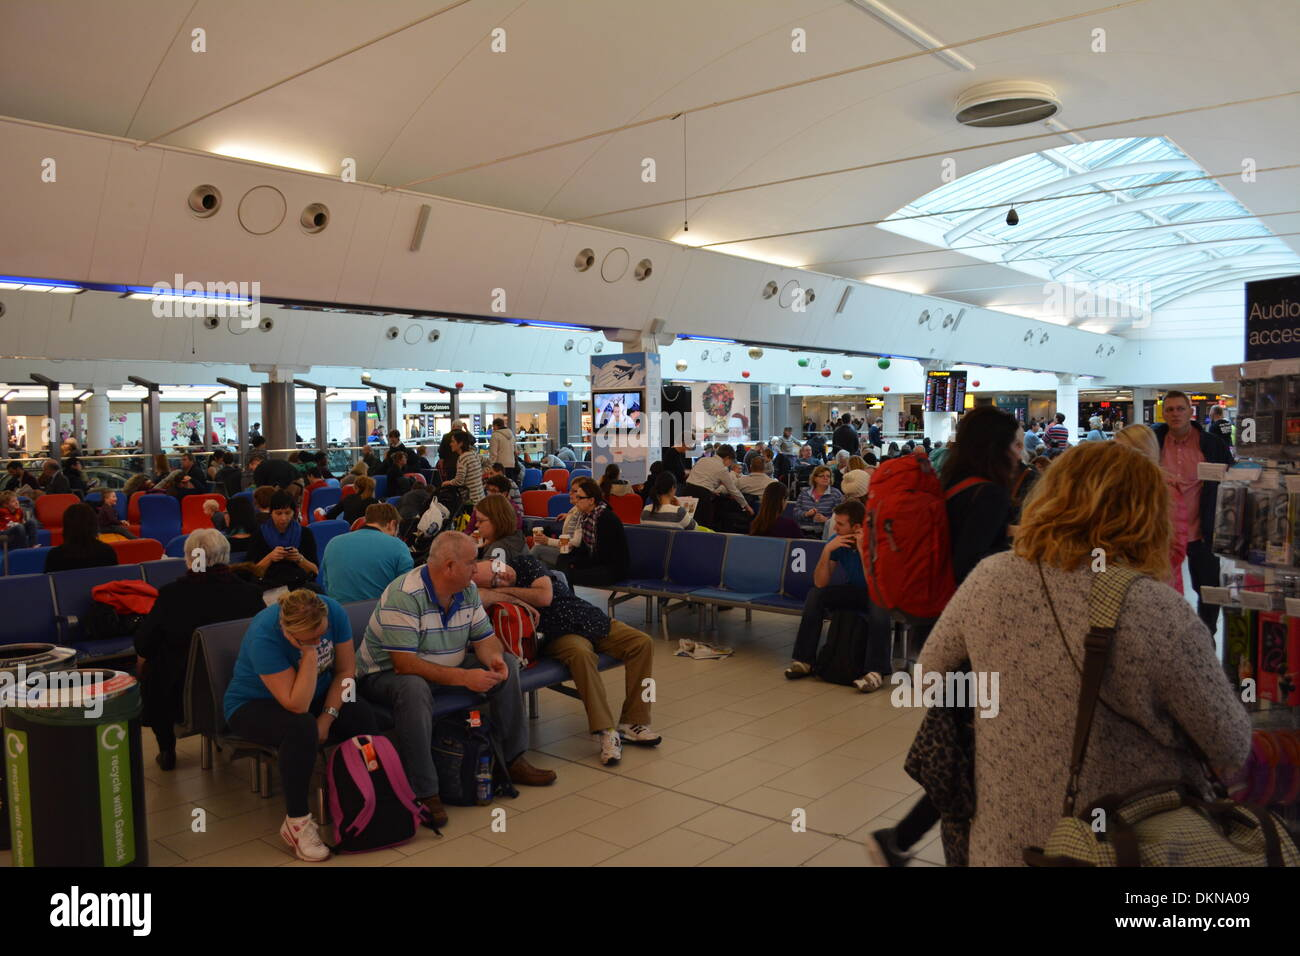 Gatwick, UK. 7th Dec 2013. Major delays took place at most airports around the UK yesterday due to a problem with air traffic control. This was taken at Gatwick airport where passengers were delayed for hours. Credit:  Greg Weddell/Alamy Live News - Stock Image